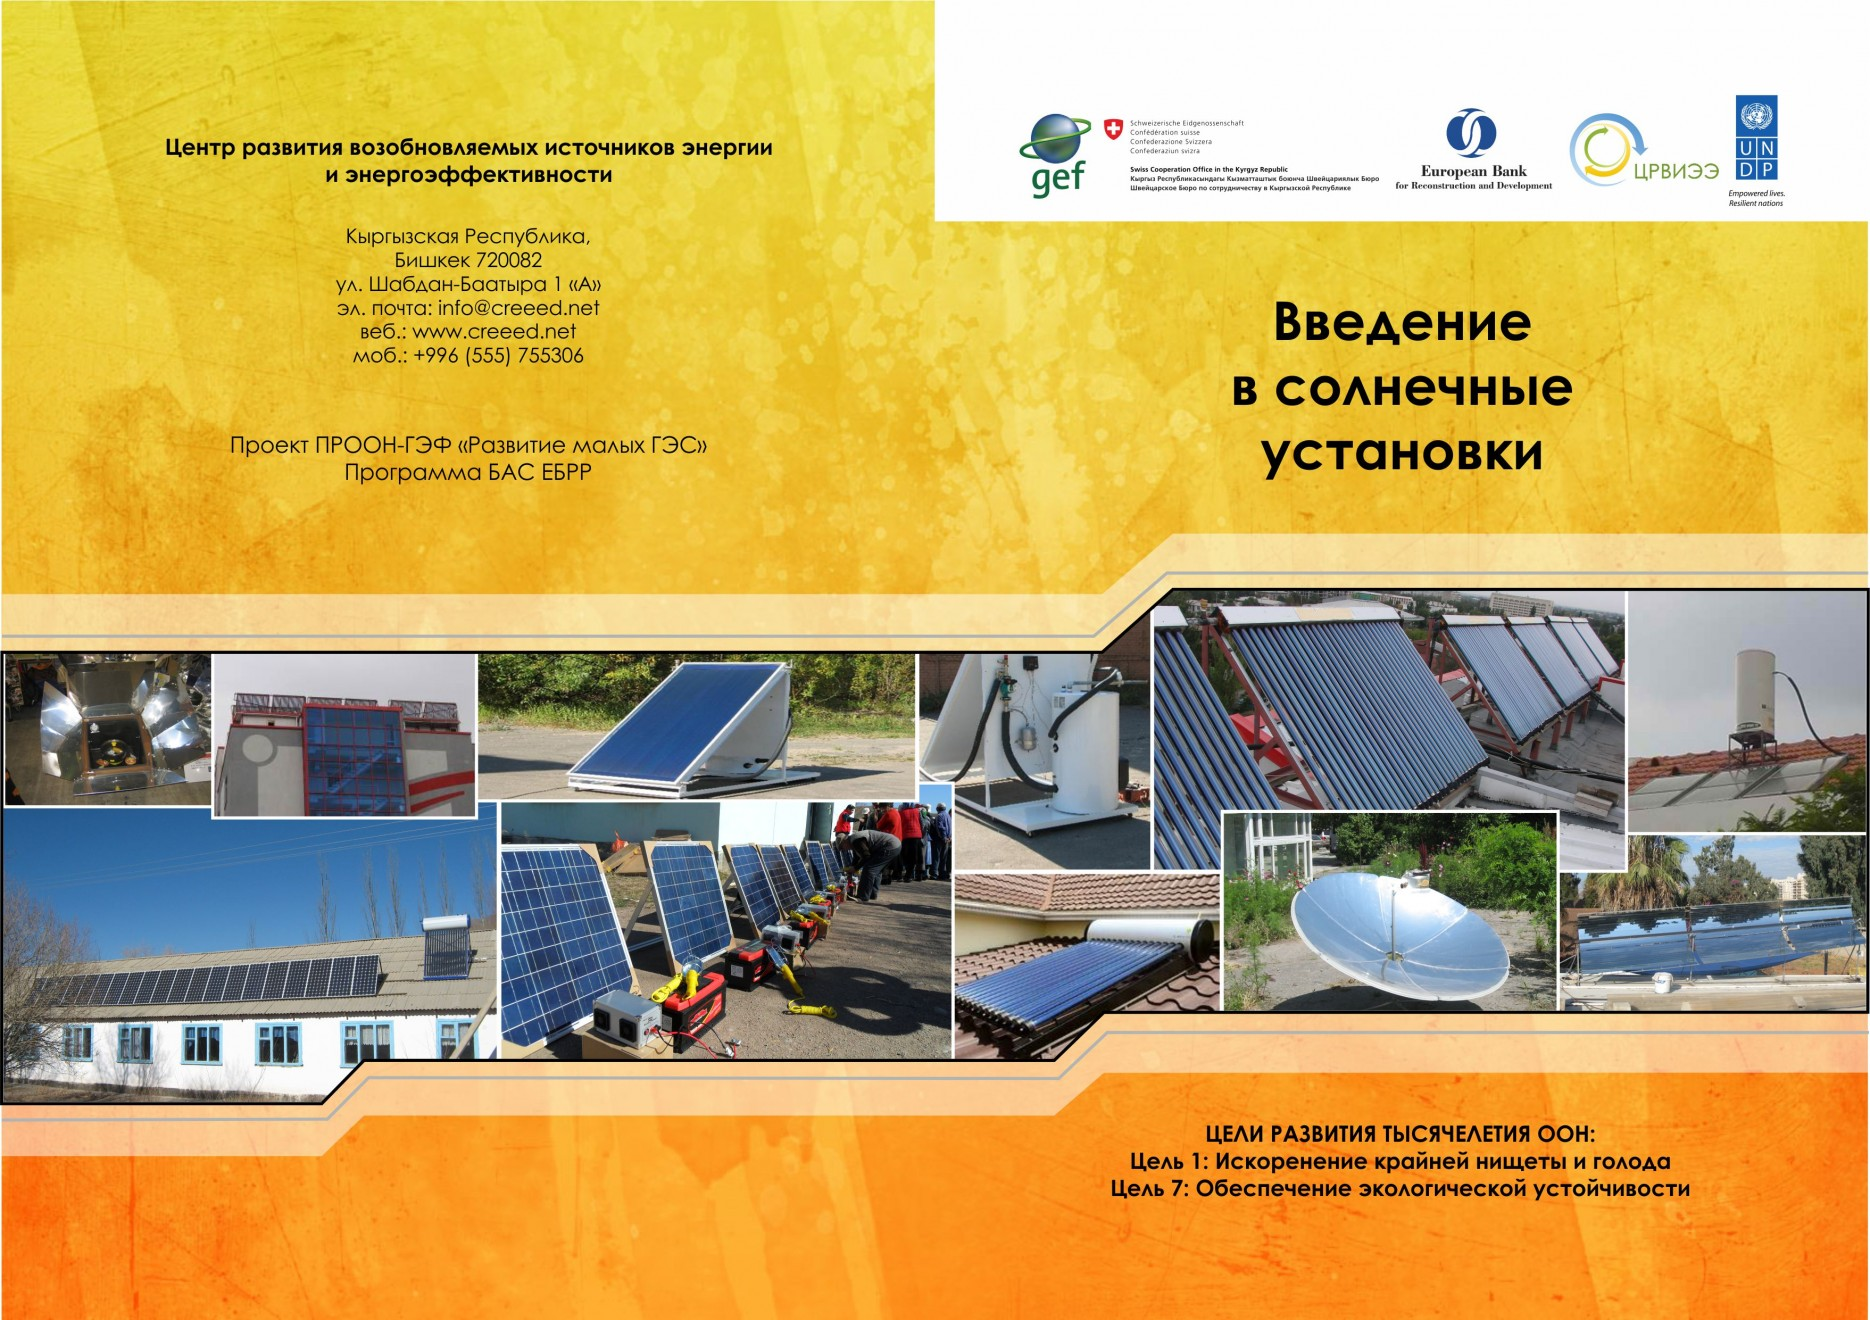 CREEED has prepared broshures and manuals on renewable technologies